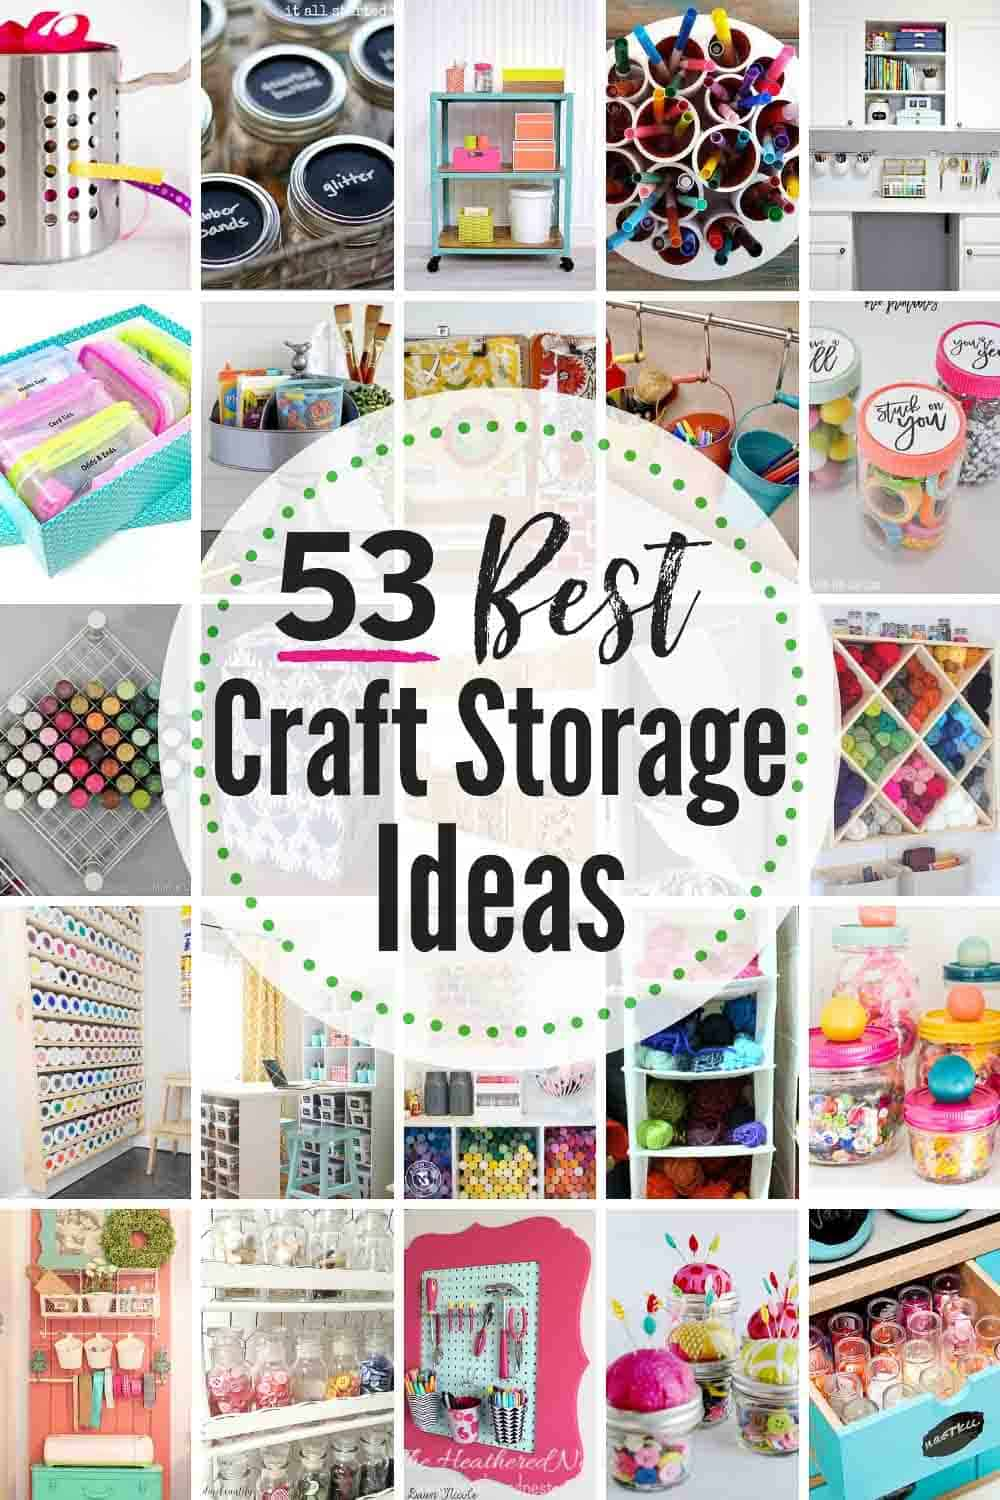 53 Best Creative Craft Storage Ideas! Get those crafting supplies organized in a flash with these great DIY organization hacks! #craft #crafting #craftstorageideas #craftorganizationideas #craftroomorganization #craftroomorganizationideas